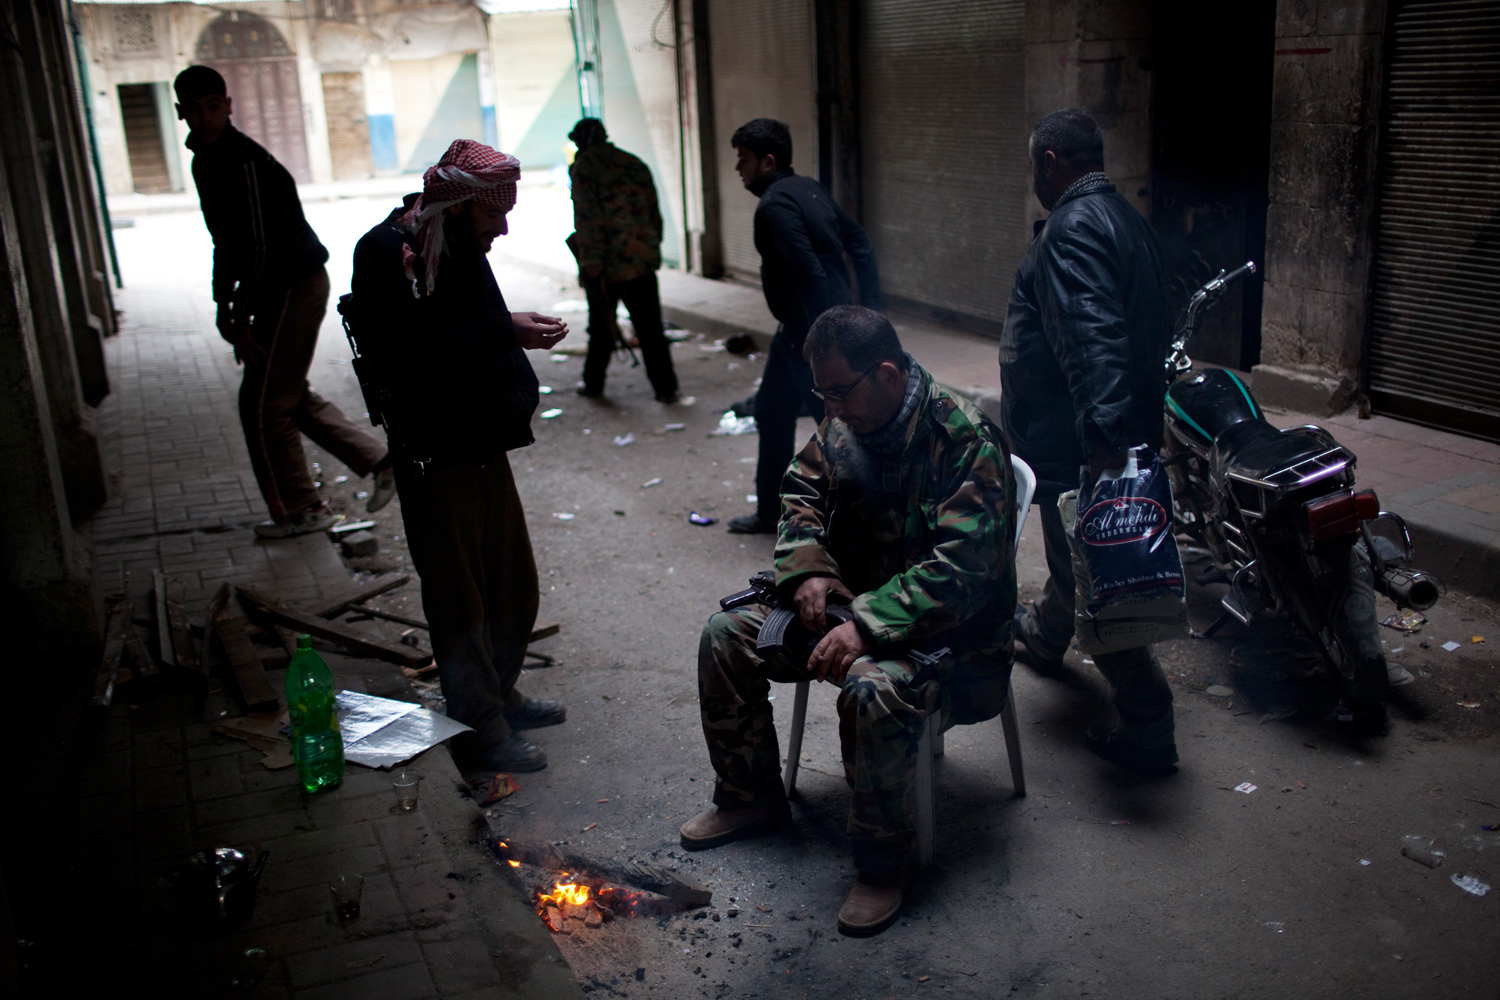 March 11, 2012. Syria rebels pause for a moment in between  fierce firefights with Syrian Army in the town of Idlib, north Syria. In the previous days, troops had encircled Idlib, and tank shells pounded the city from dawn until evening.